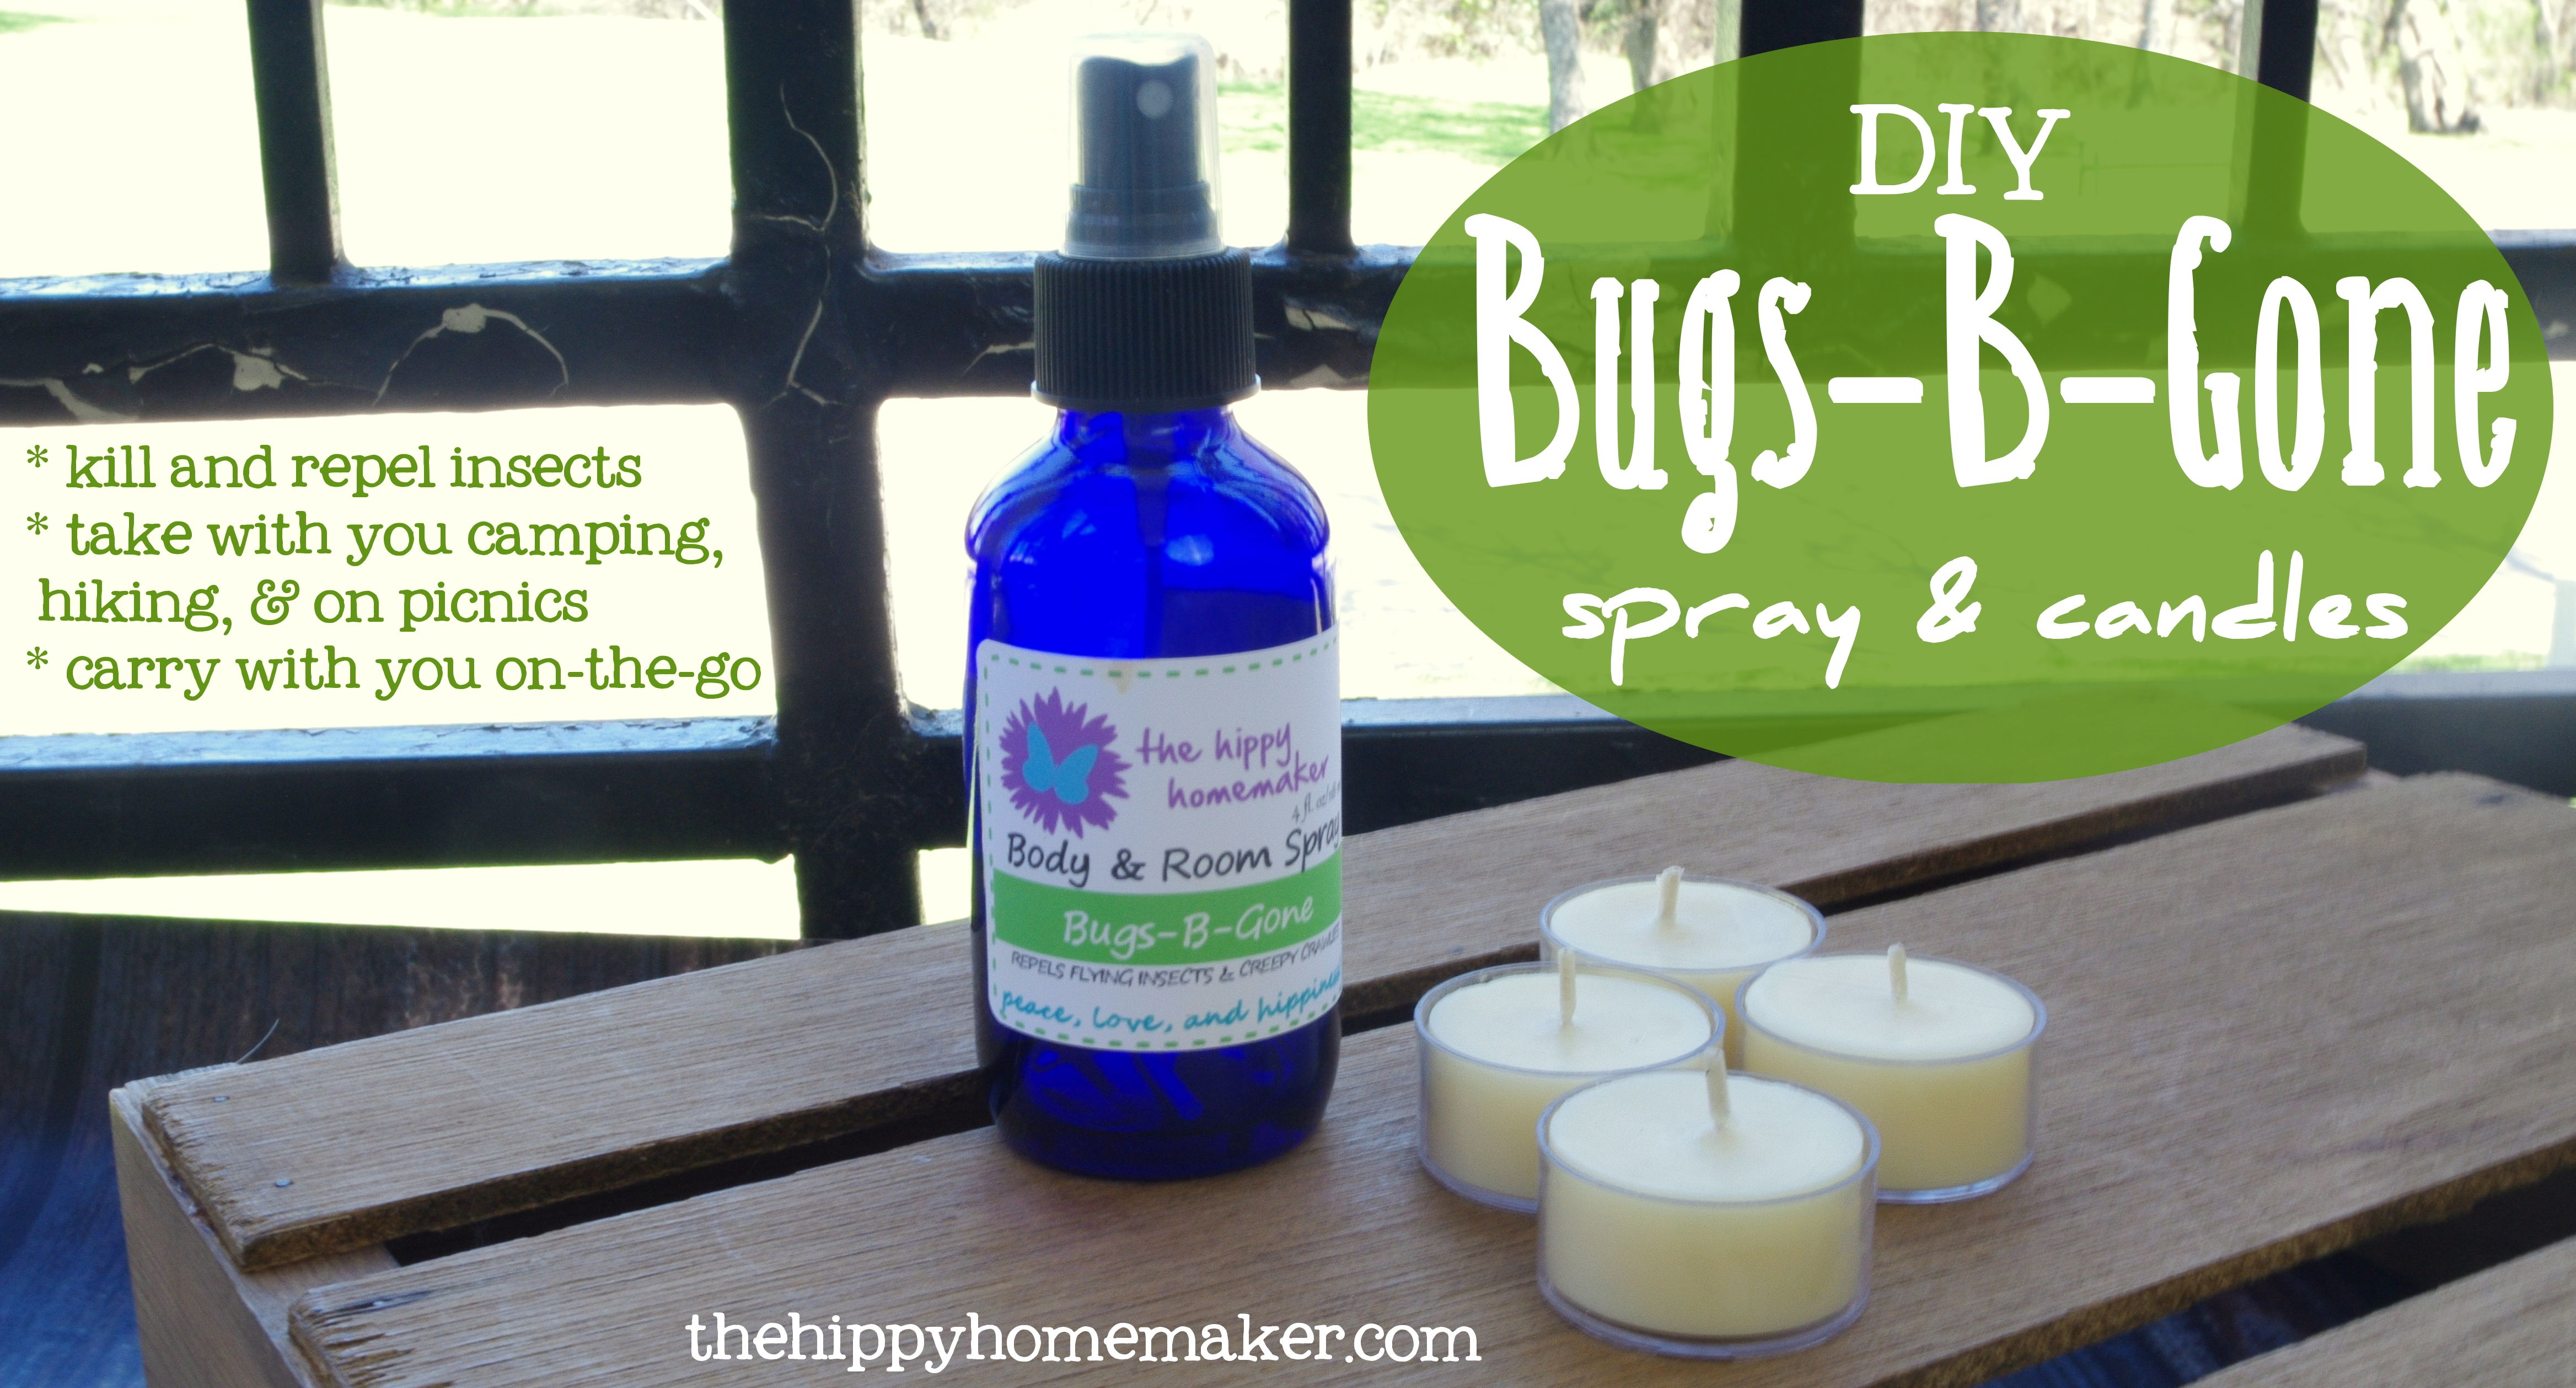 Ban The Bugs With Essential Oils Diy Bugs B Gone Candles Spray The Hippy Homemaker Diy Essential Oils Safe Bug Repellent Spray